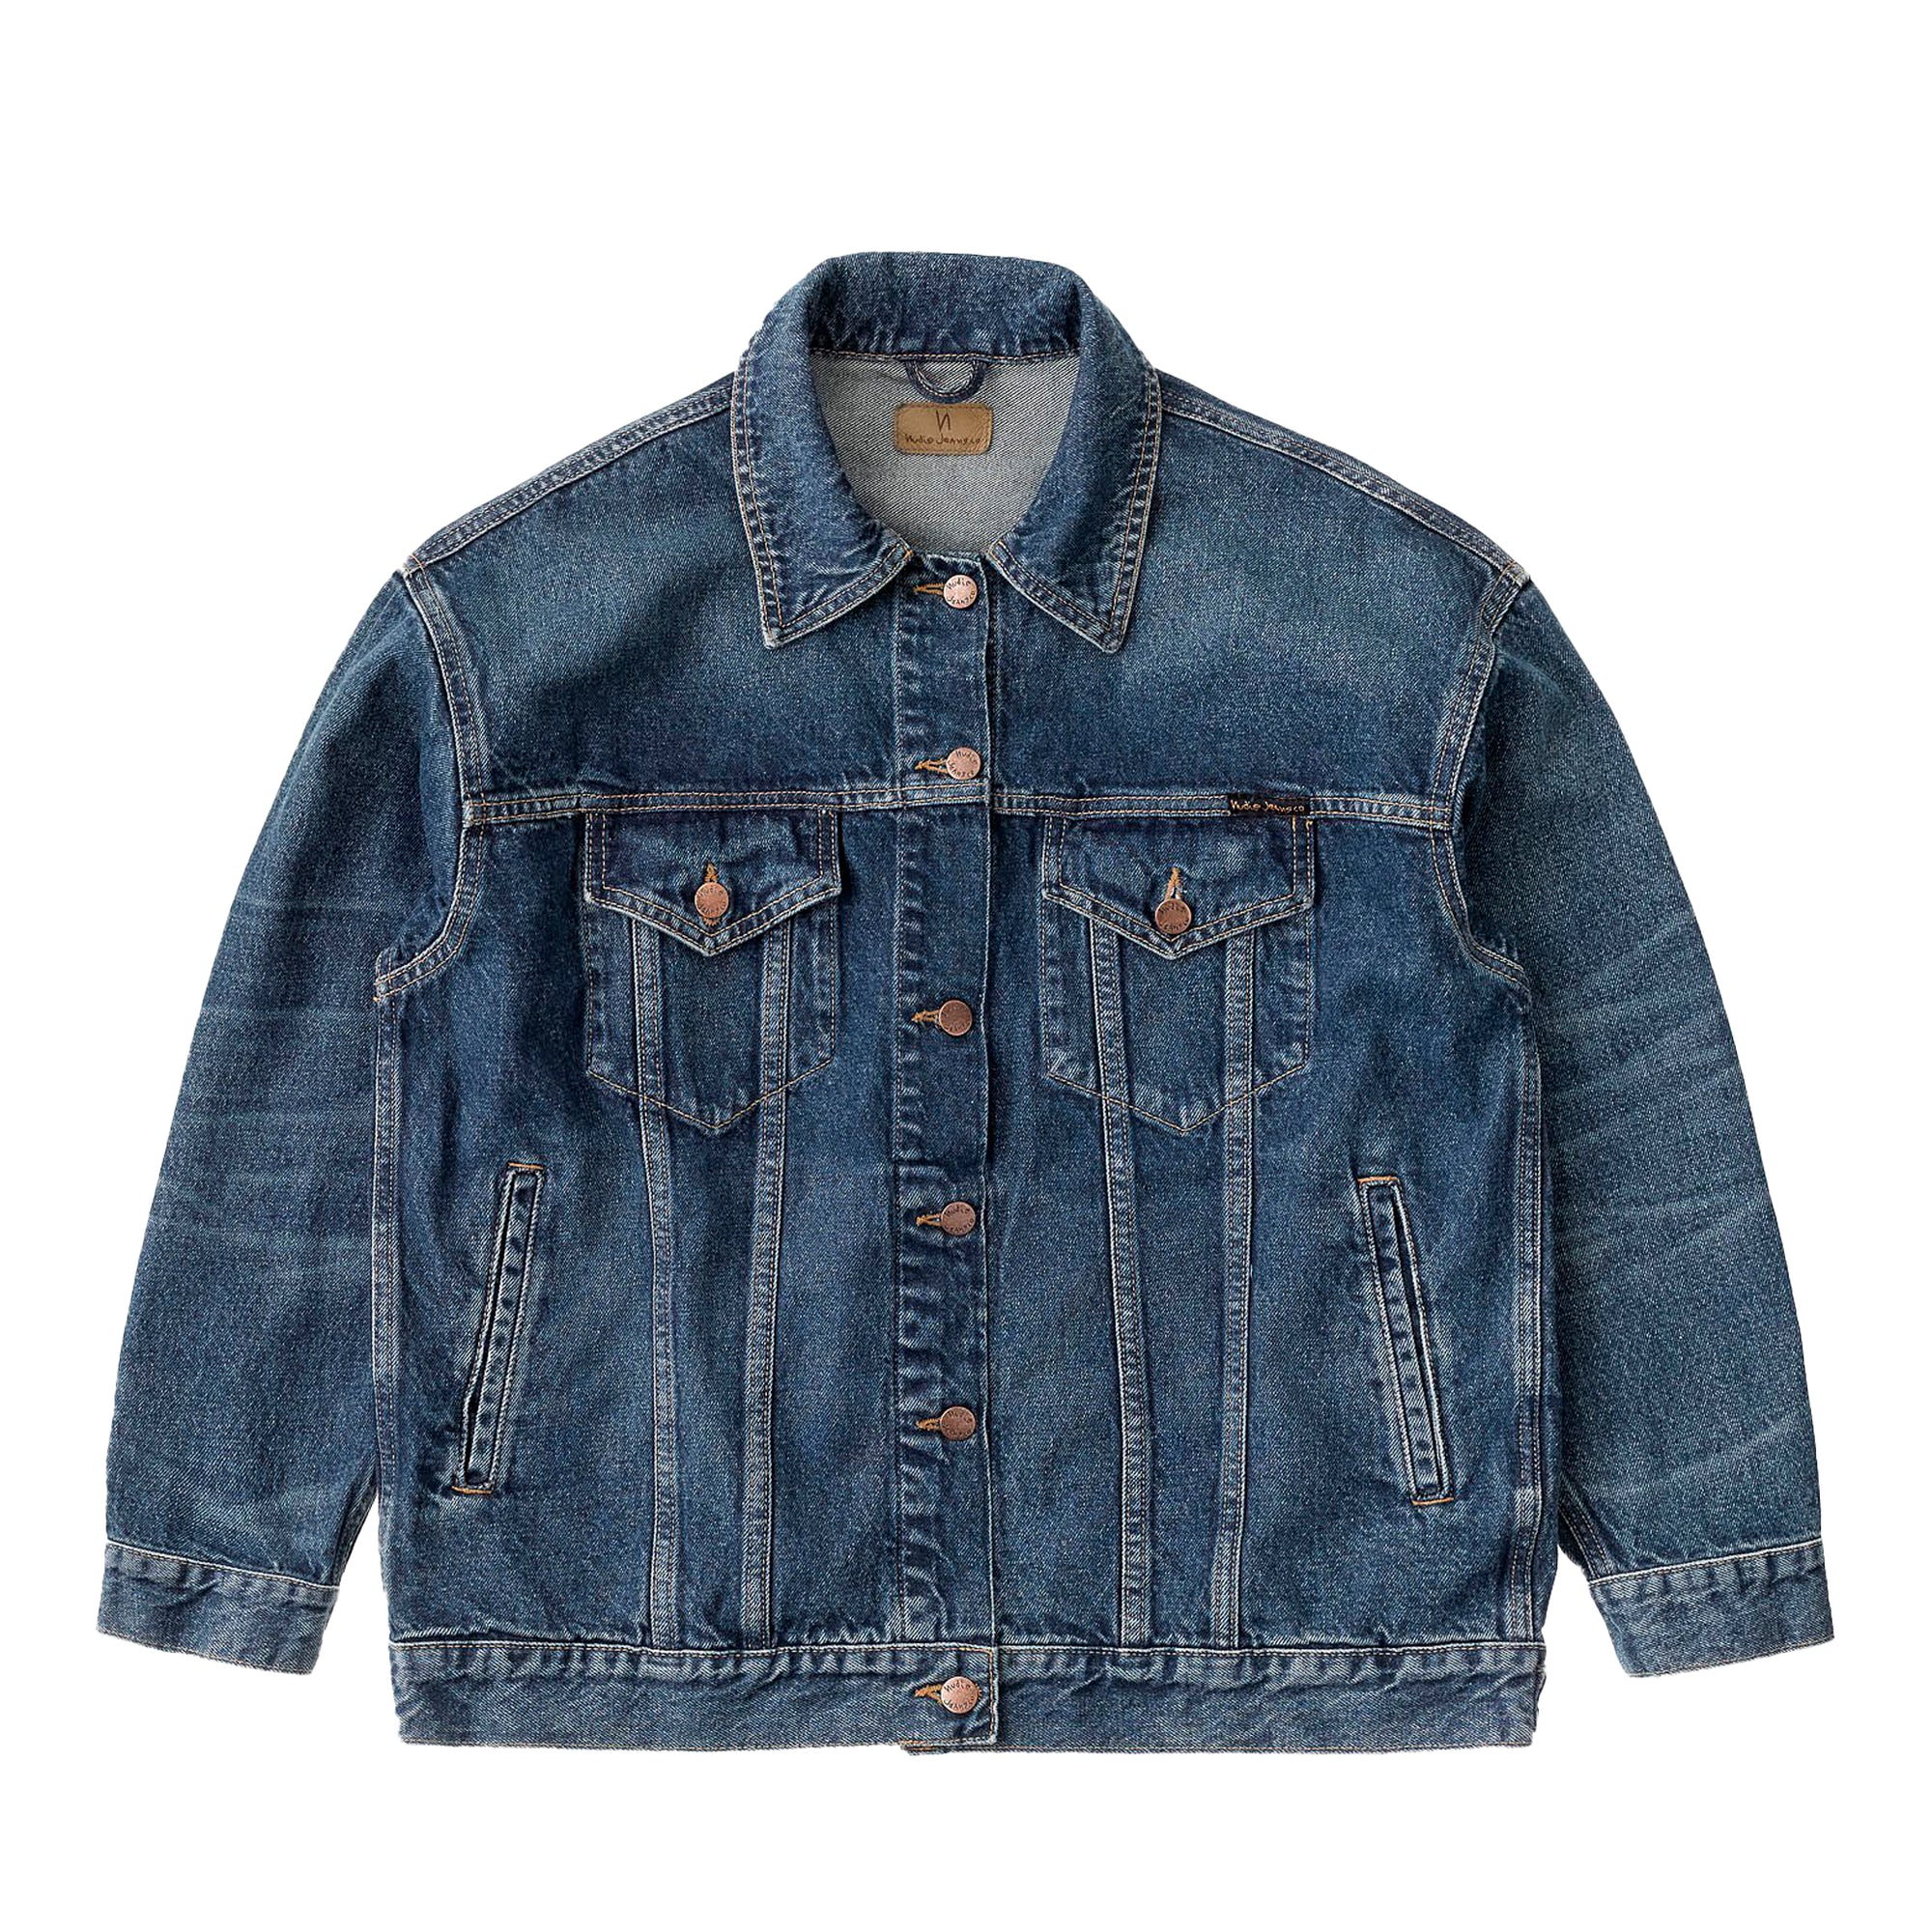 Nudie Jeans Womens Elin Jacket: Blue Maze - The Union Project